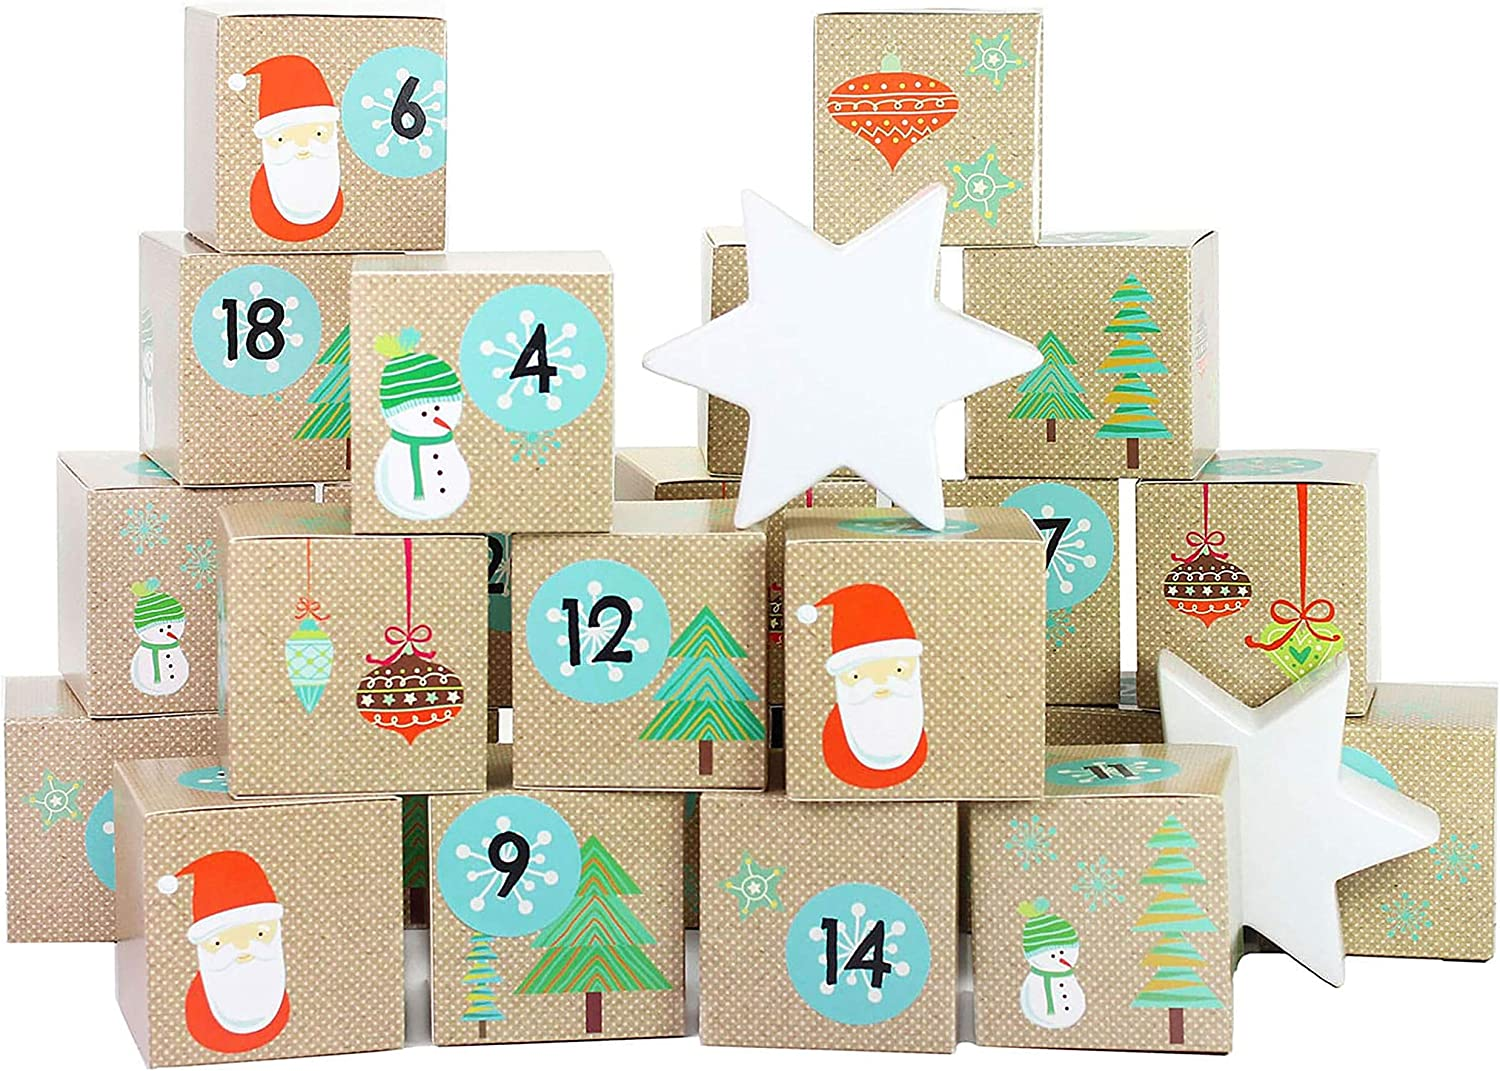 Papierdrachen DIY Advent Calendar Set - Santa Claus - 24 Printed Cardboard Boxes for Making and Filling